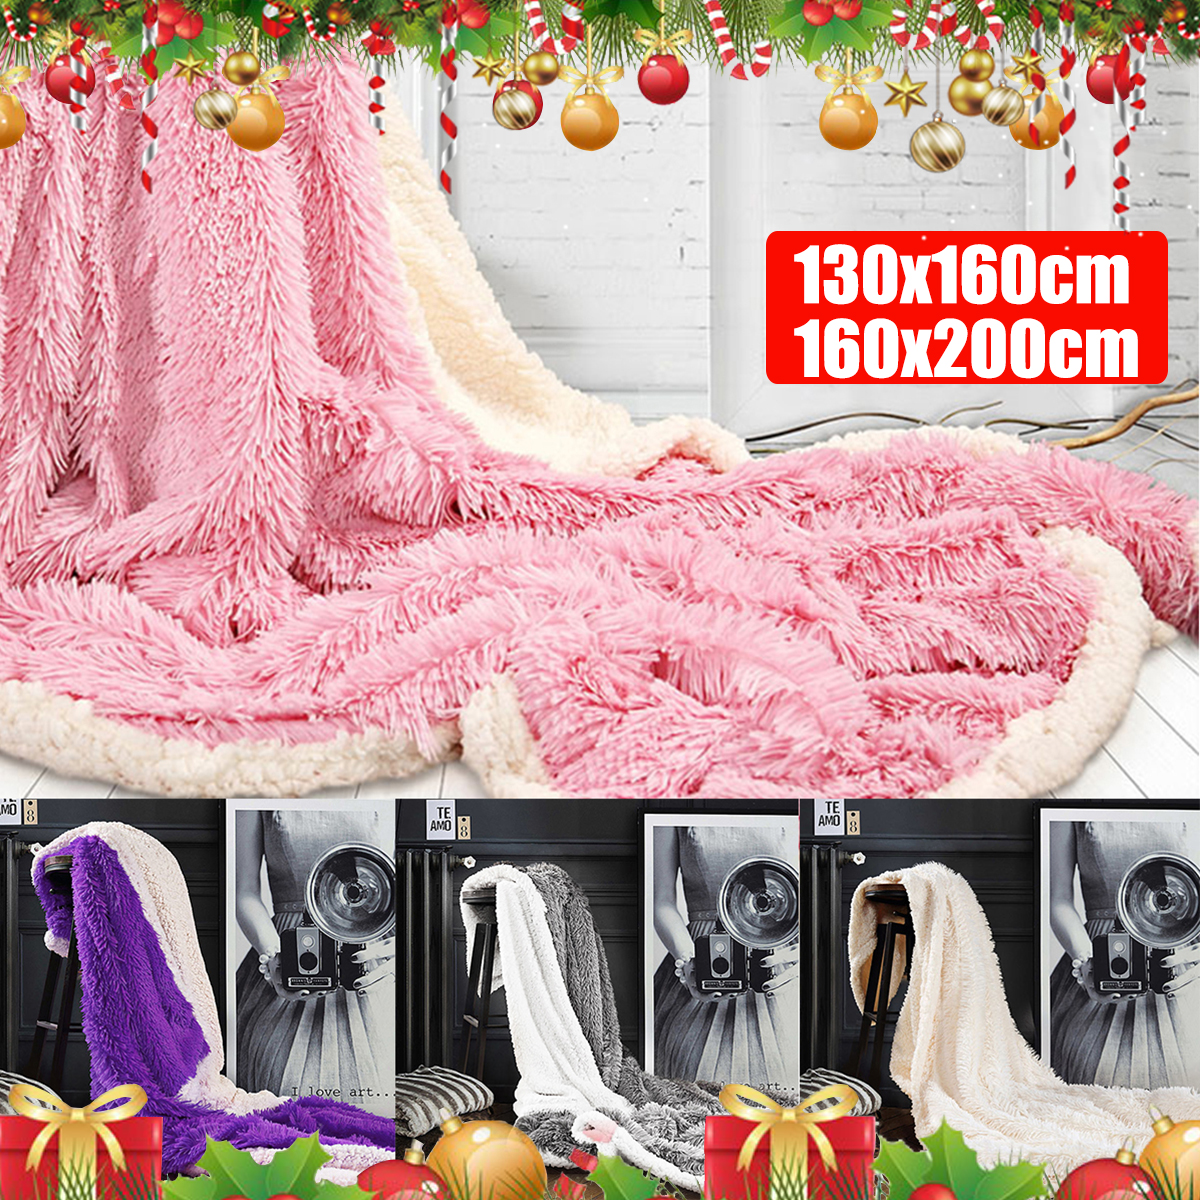 Large Soft Warm Shaggy Double Sized Fluffy Plush Blanket Throw Sofa Blankets Bed Blanket Bedding Accessories